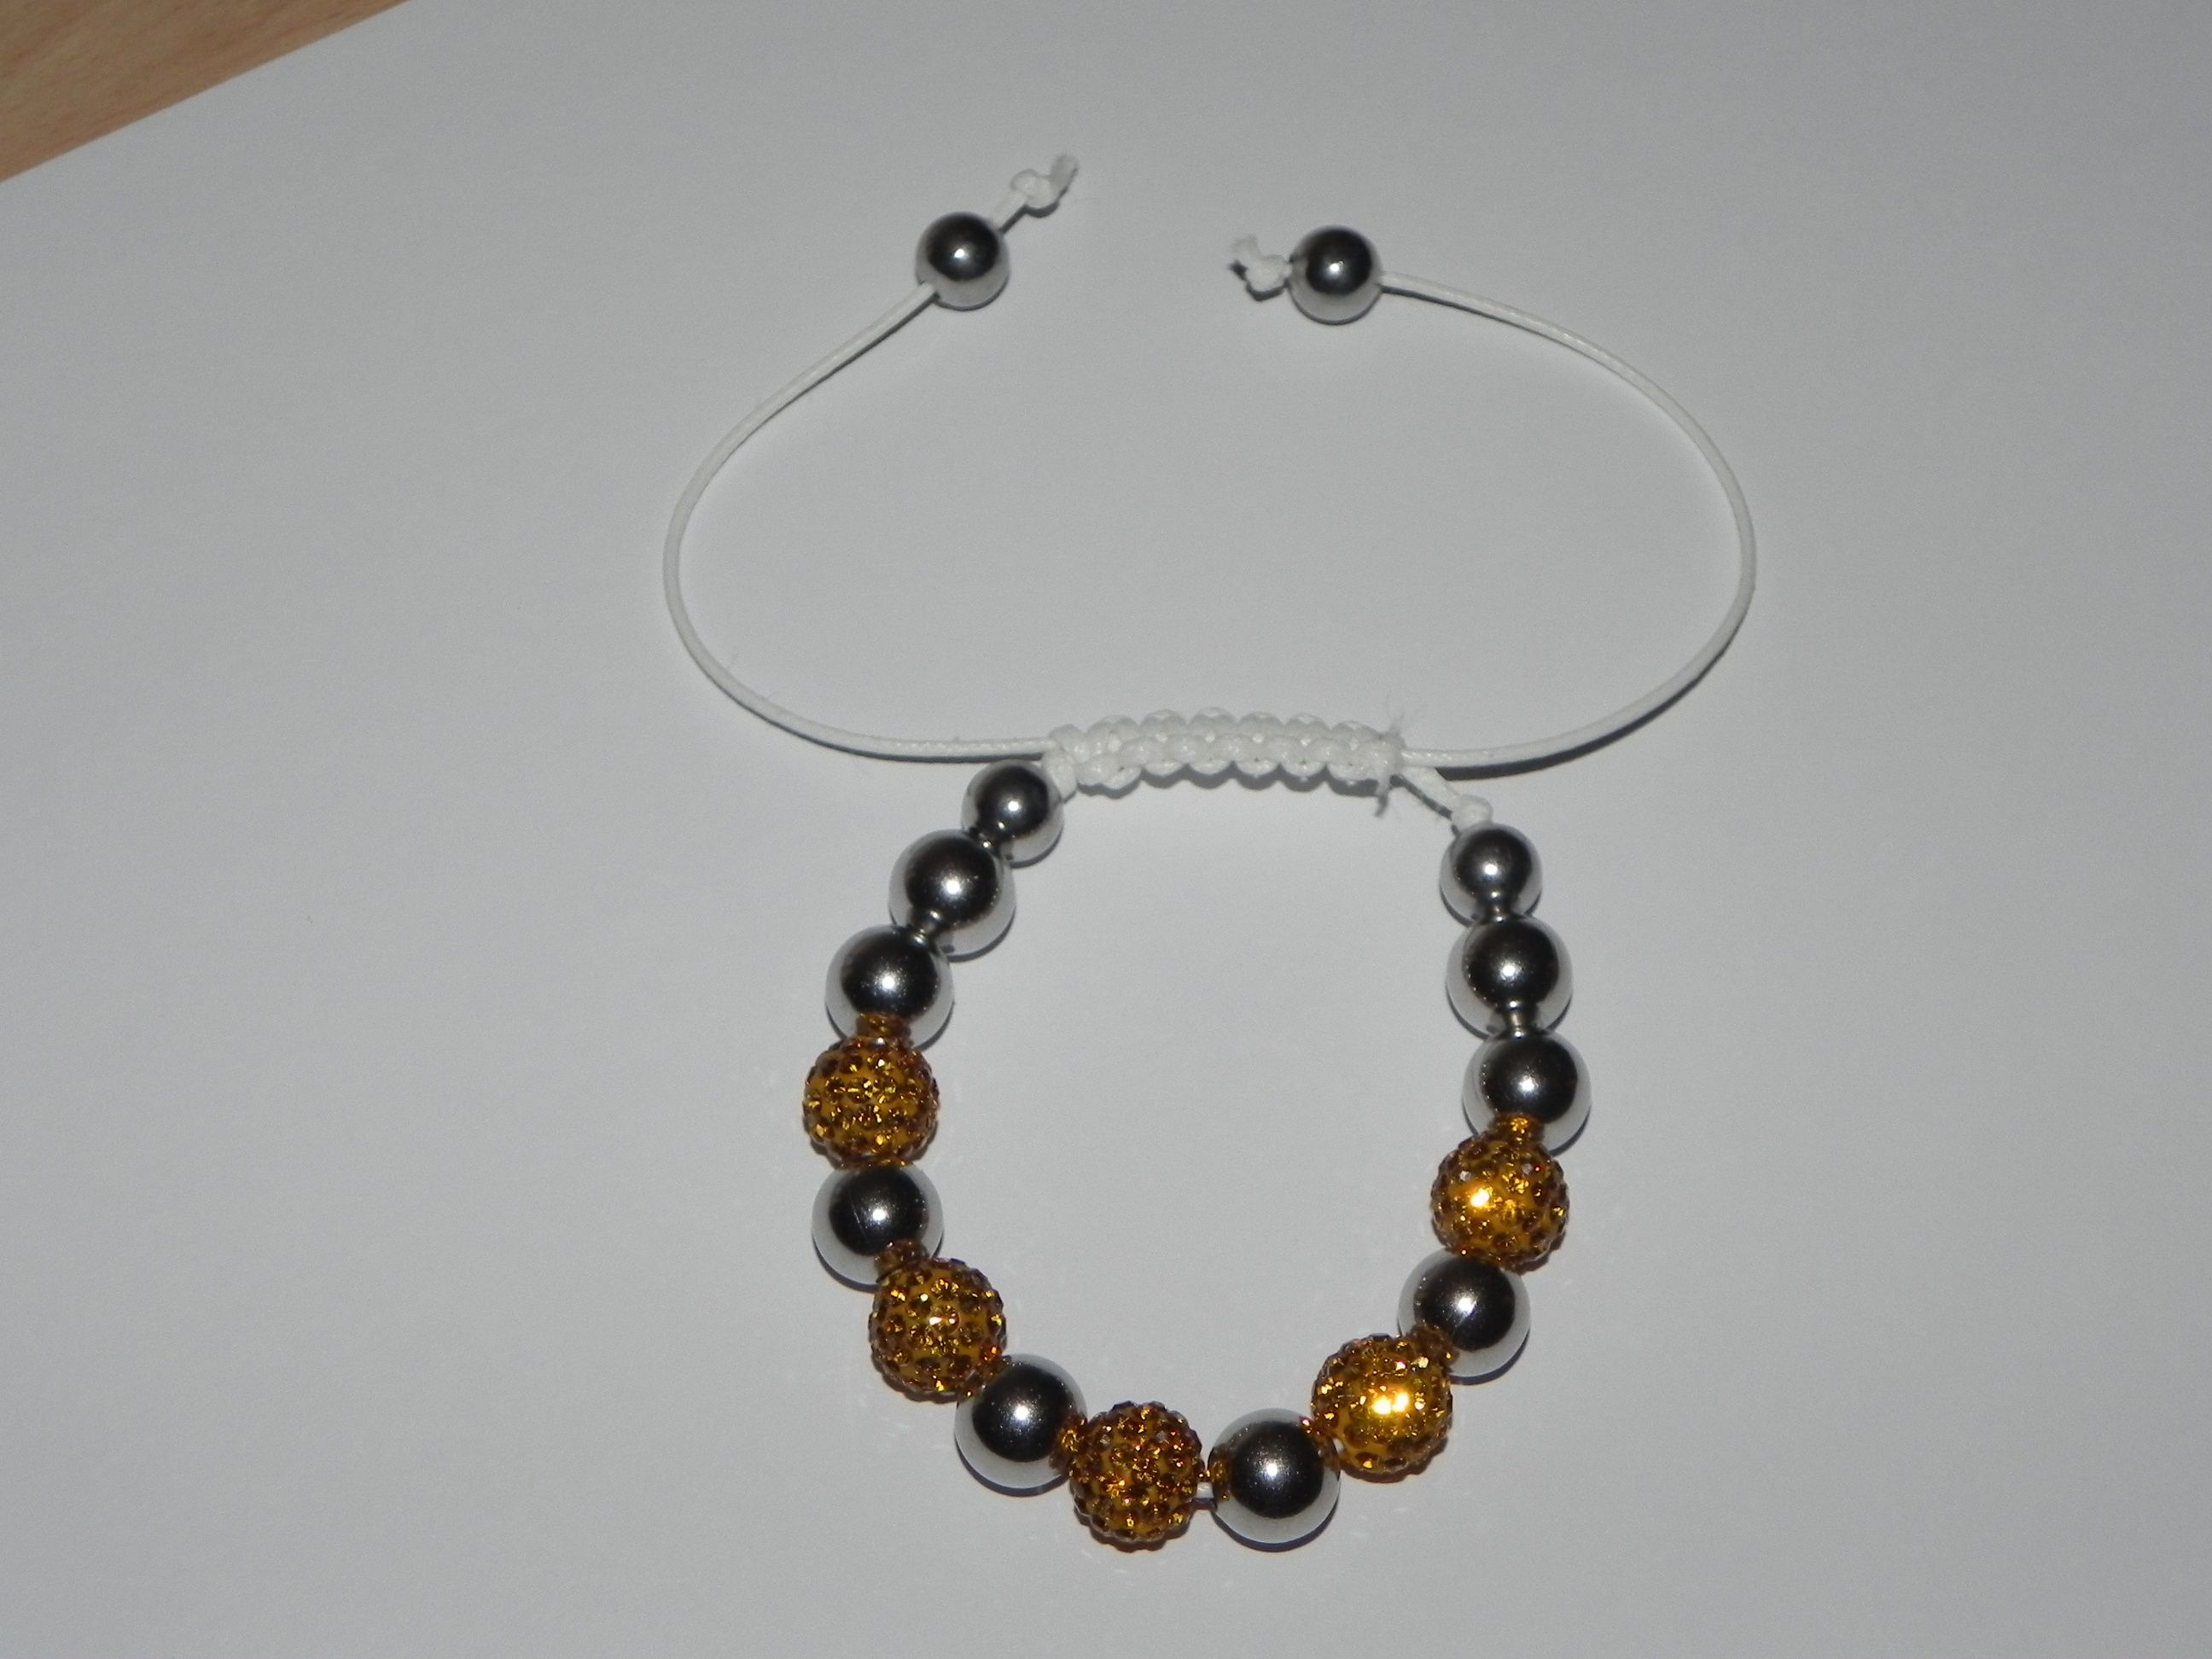 Hand Made Gold and Silver Shamballa Style Bracelet     Price £10.00